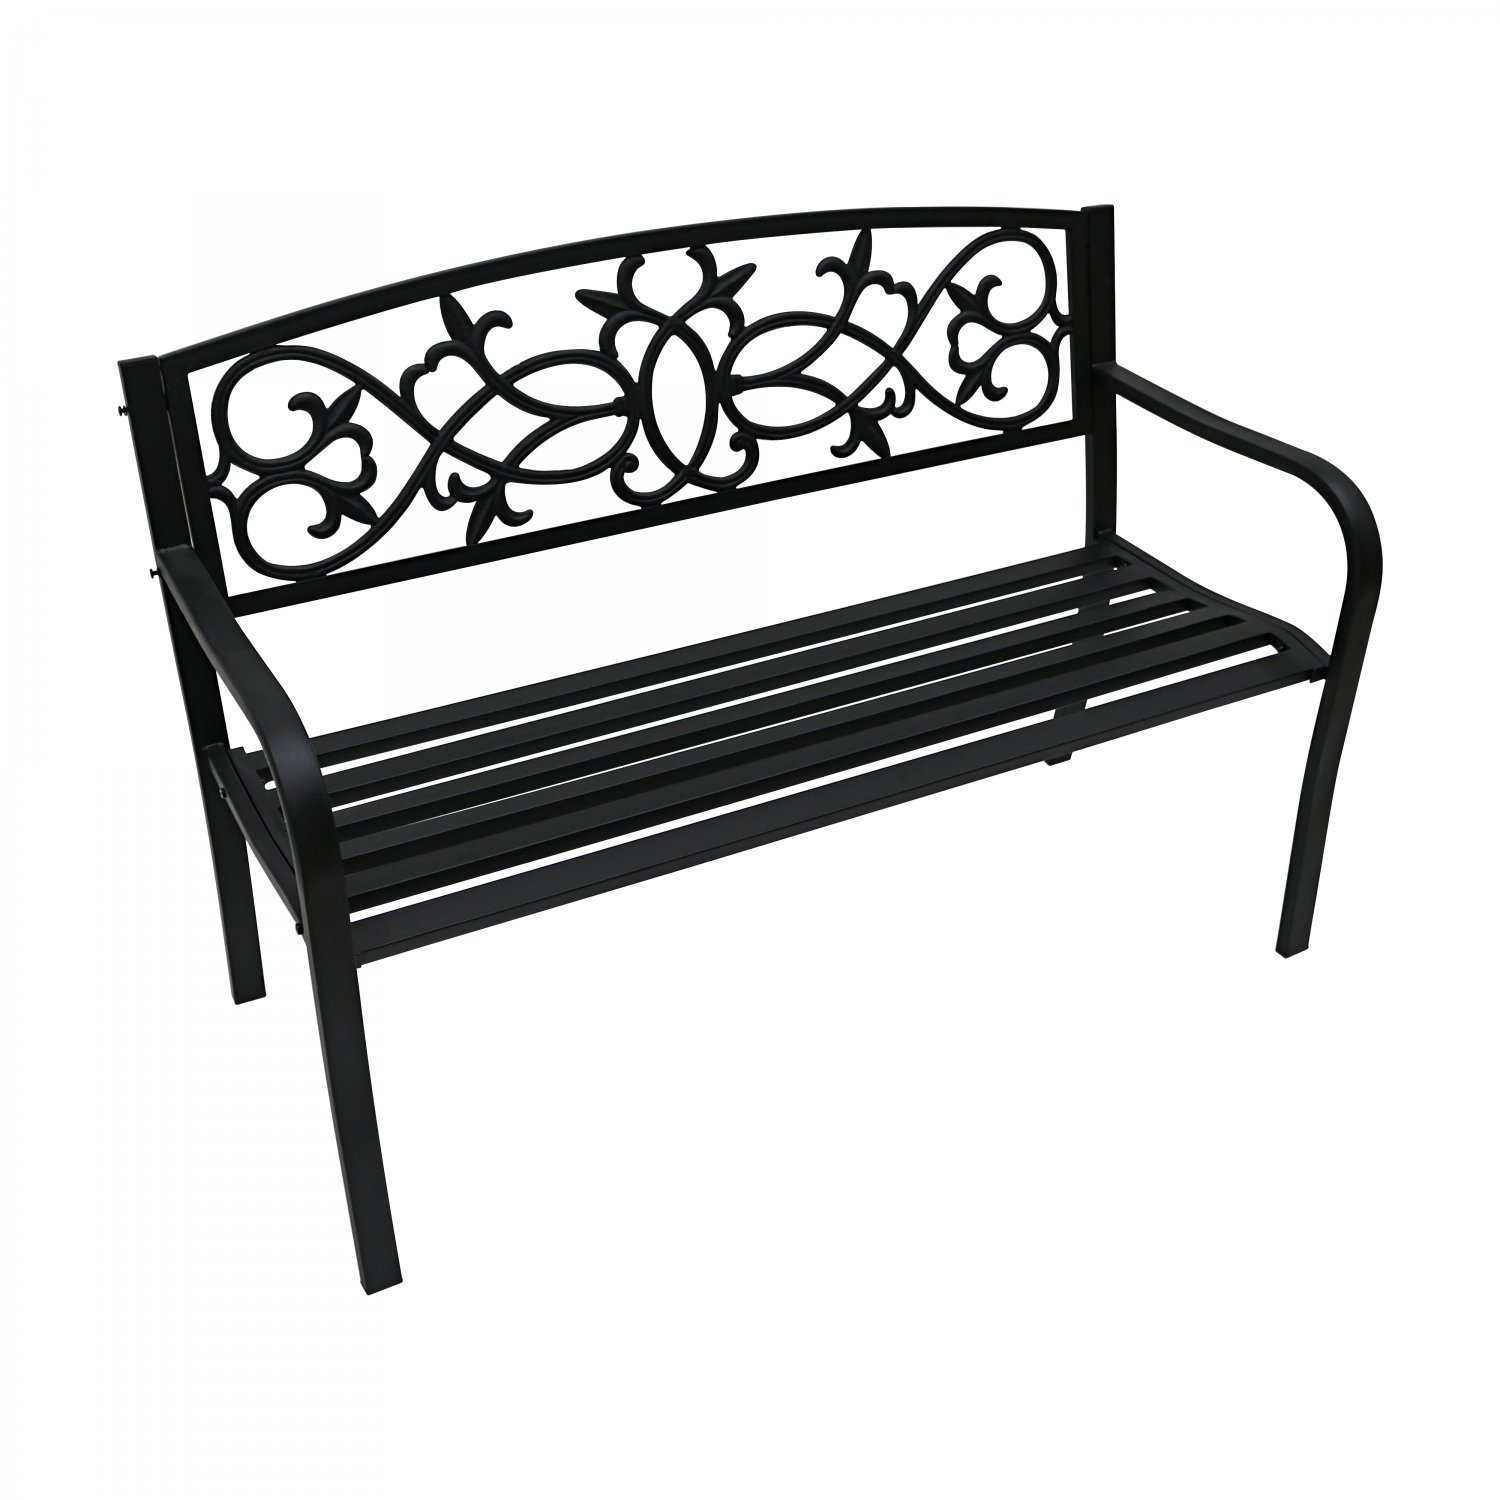 2 Seater Black Metal Outdoor Garden Bench Seat Patio Park Chair 54 99 Oypla Stocking The Very Best In Toys Electrical Furniture Homeware Garden Gifts And Much More